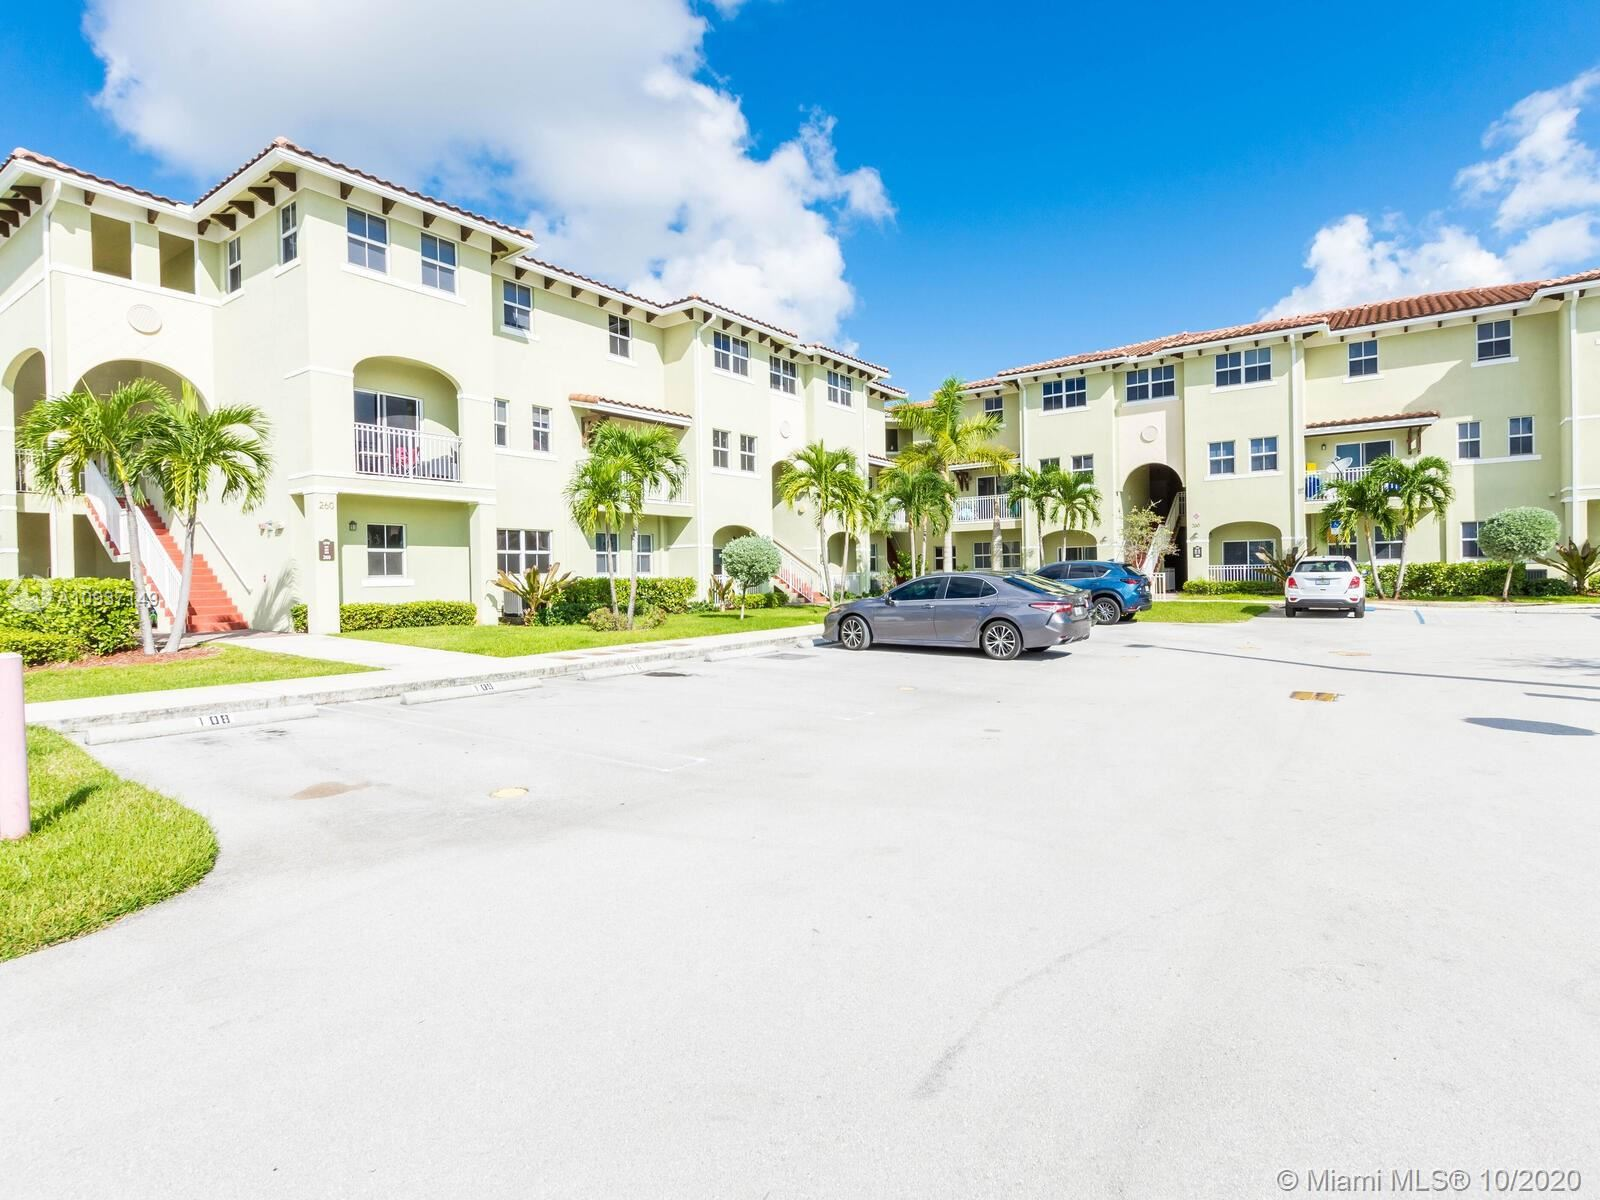 260 NW 109th Ave #105, Miami, FL 33172 - #: A10937149